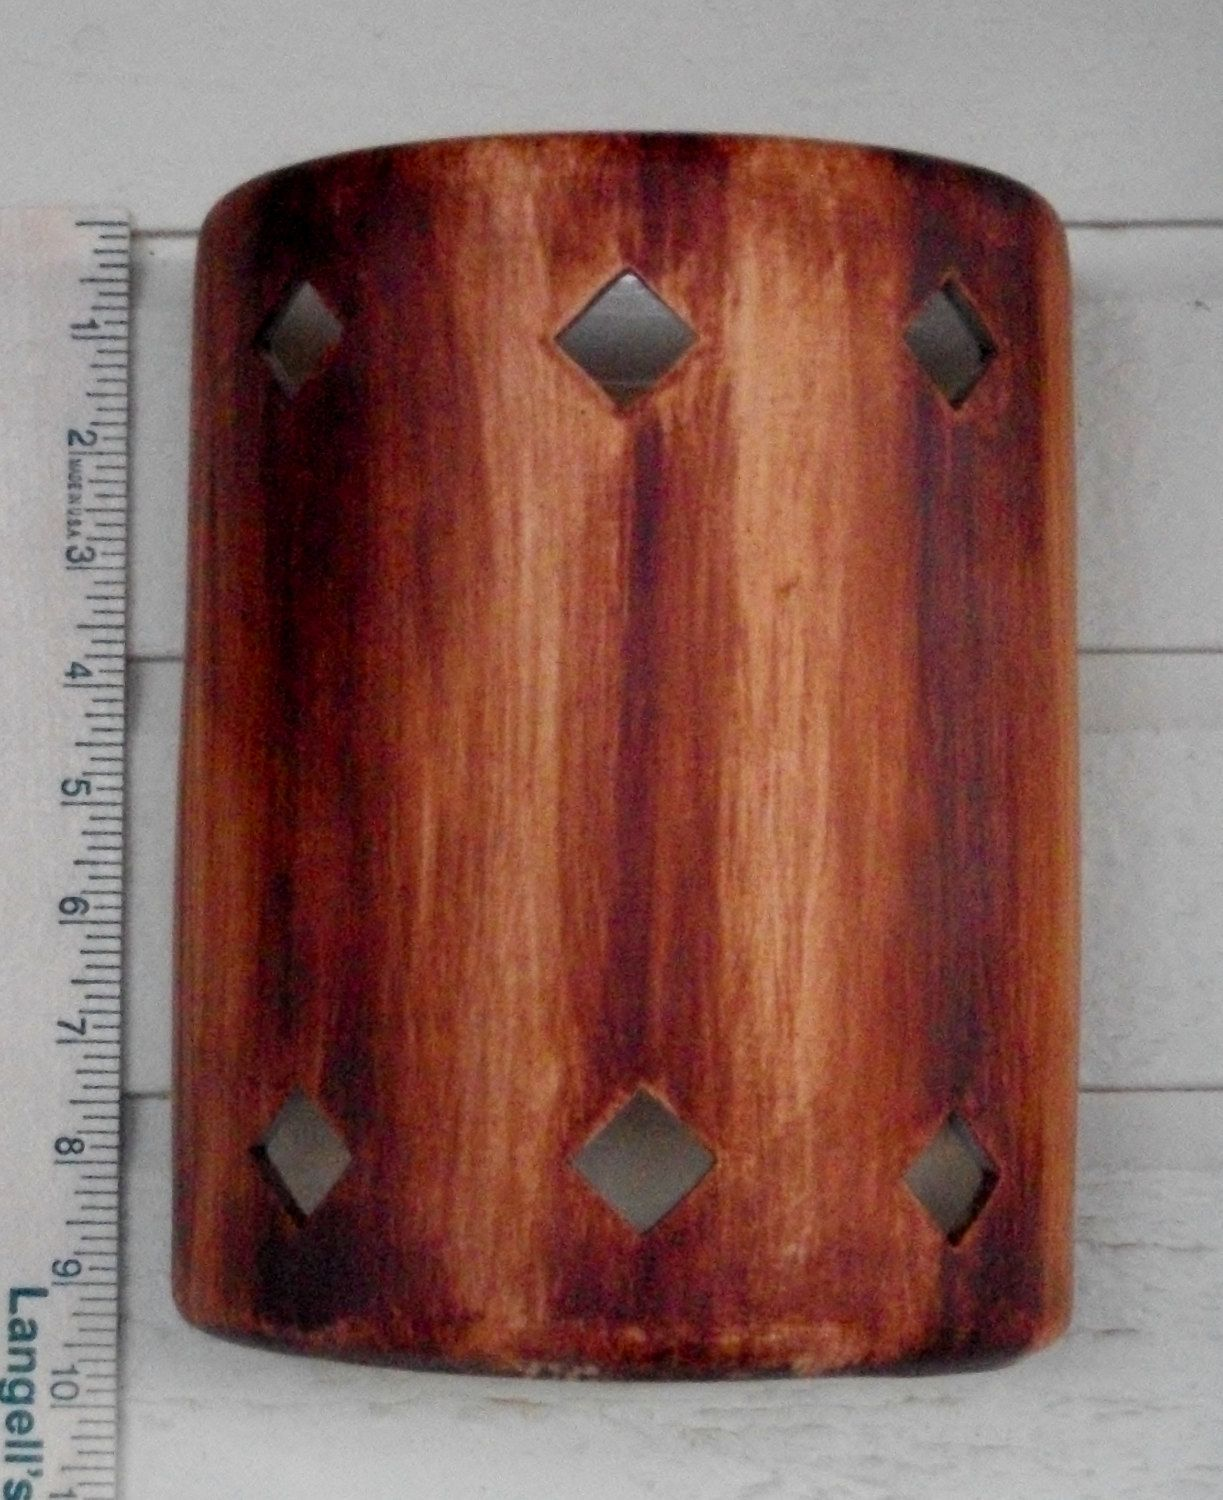 Rustic Hand Painted Ceramic Wall Light faux wood wall ... on Wood Wall Sconces Decorative Lighting id=62885